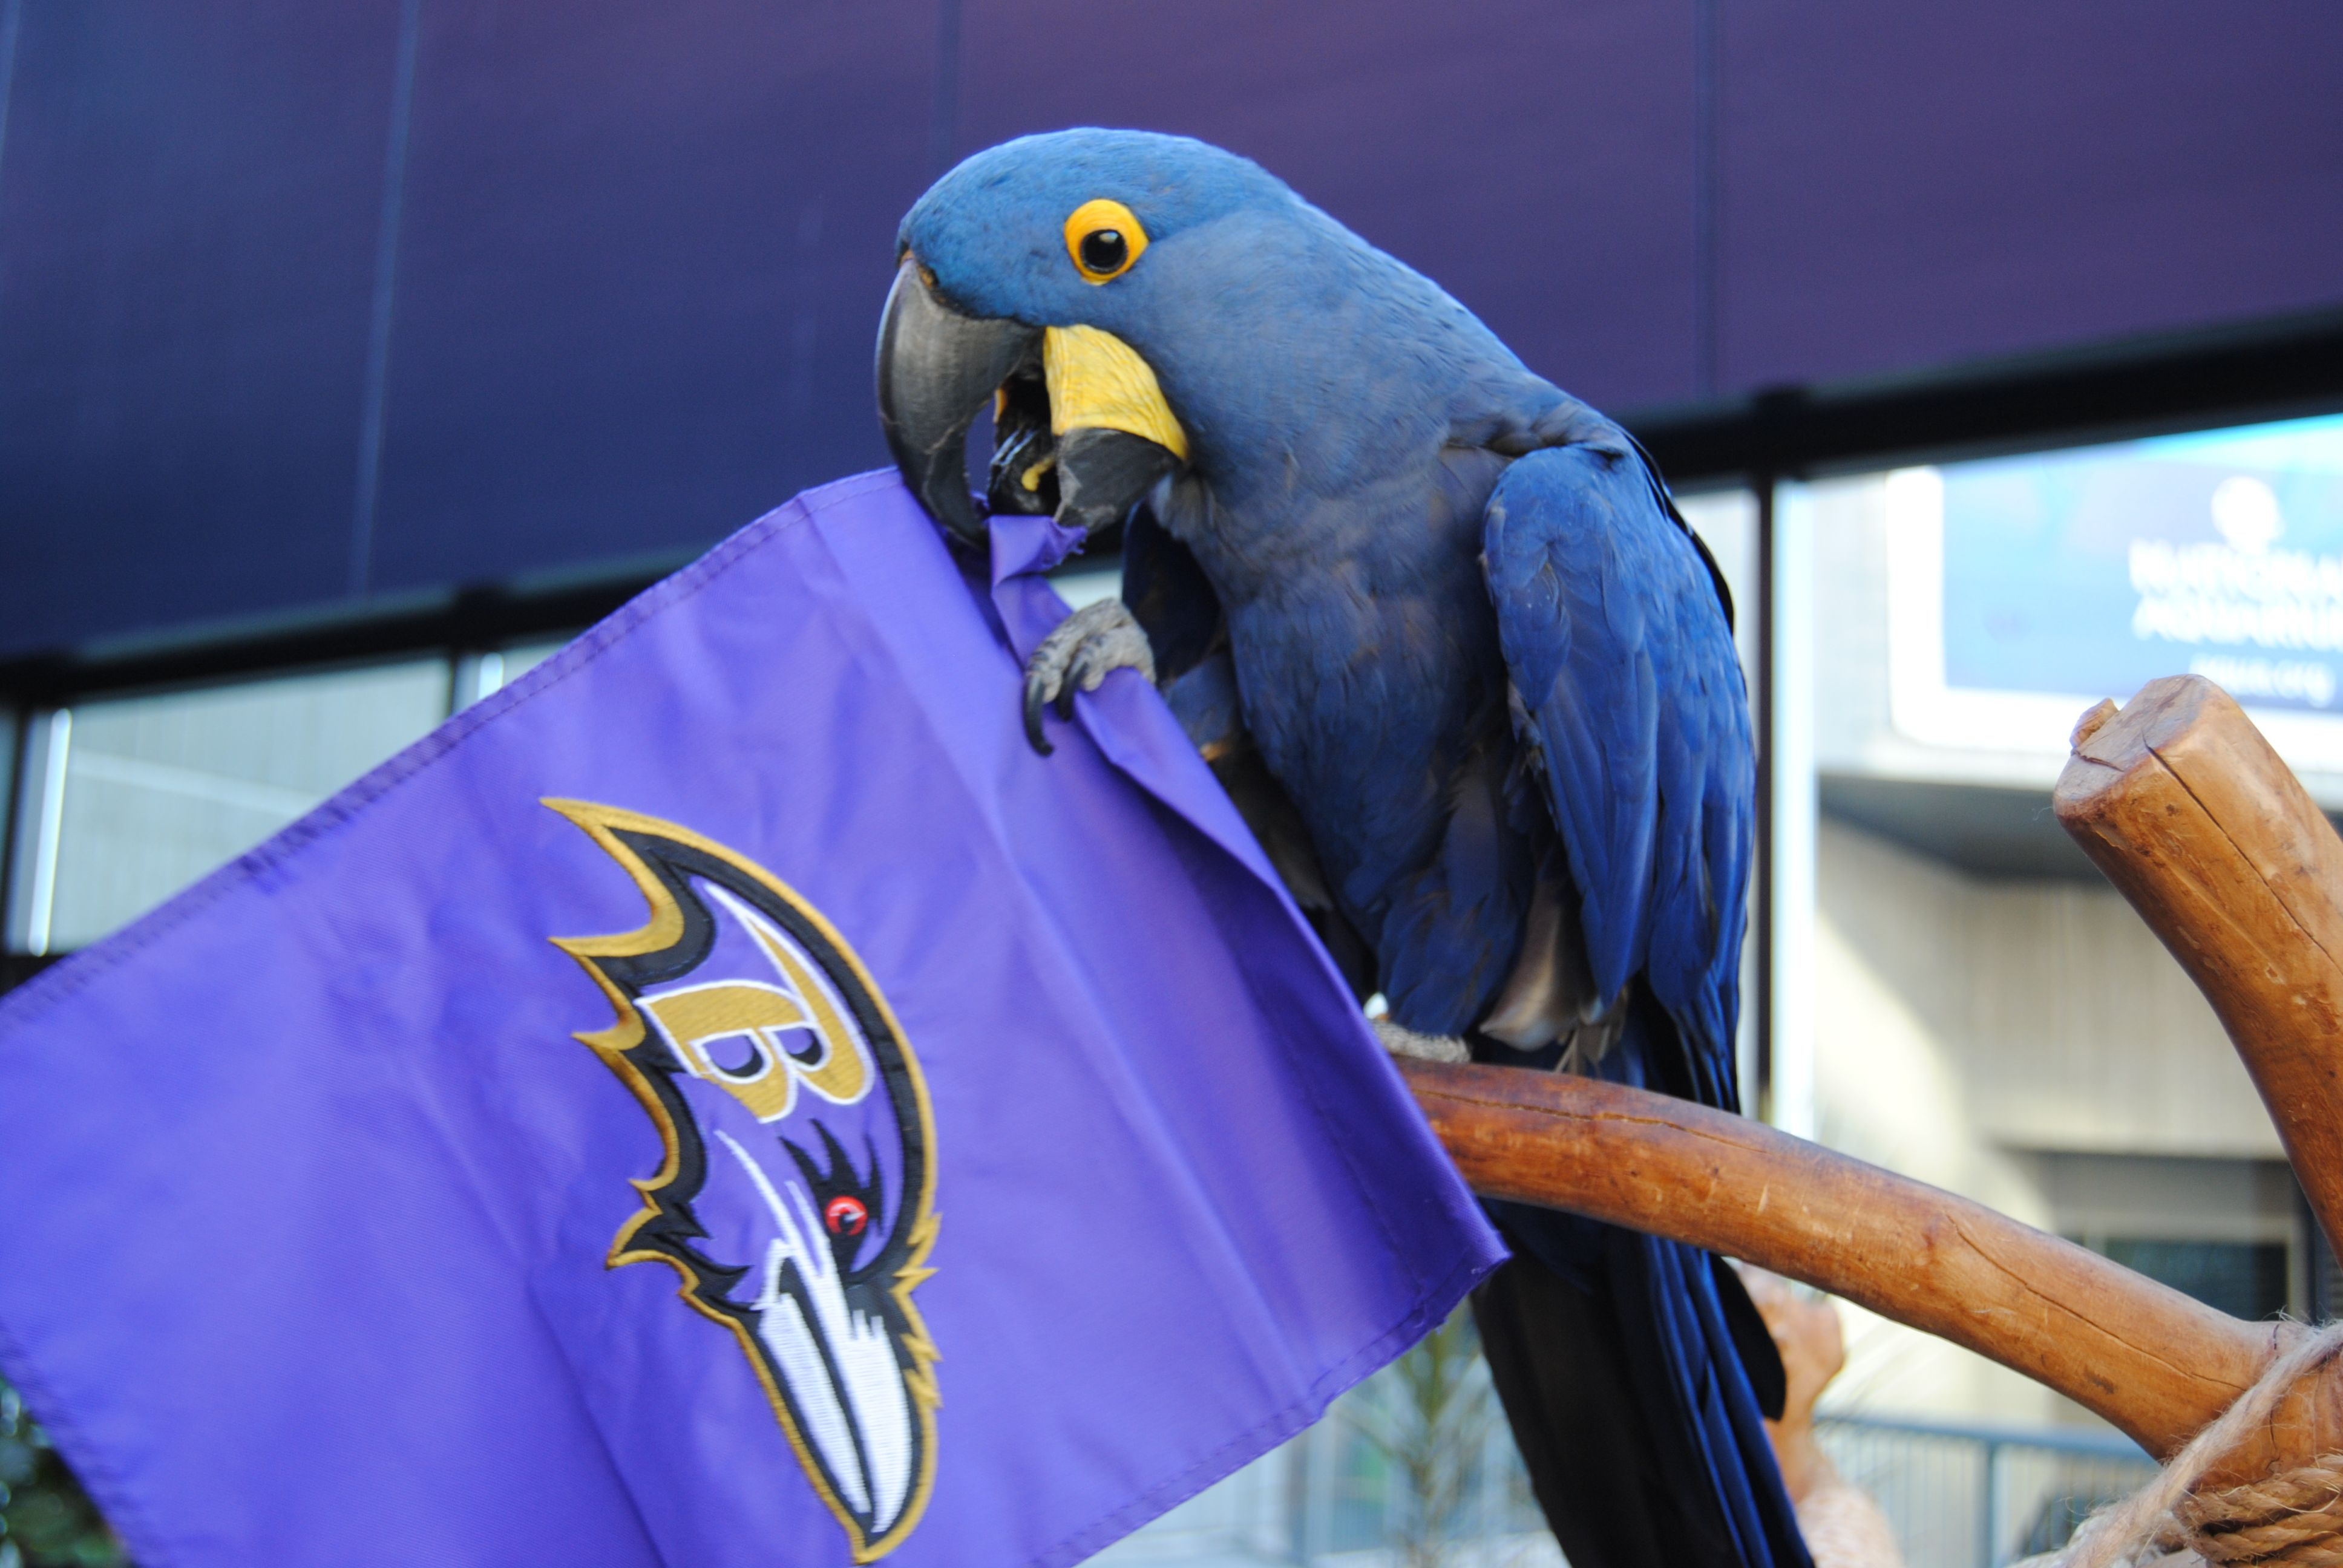 Happy Purplefriday From Margaret Our Hyacinth Macaw Go Ravens Cute Animals Purple Pride Macaw